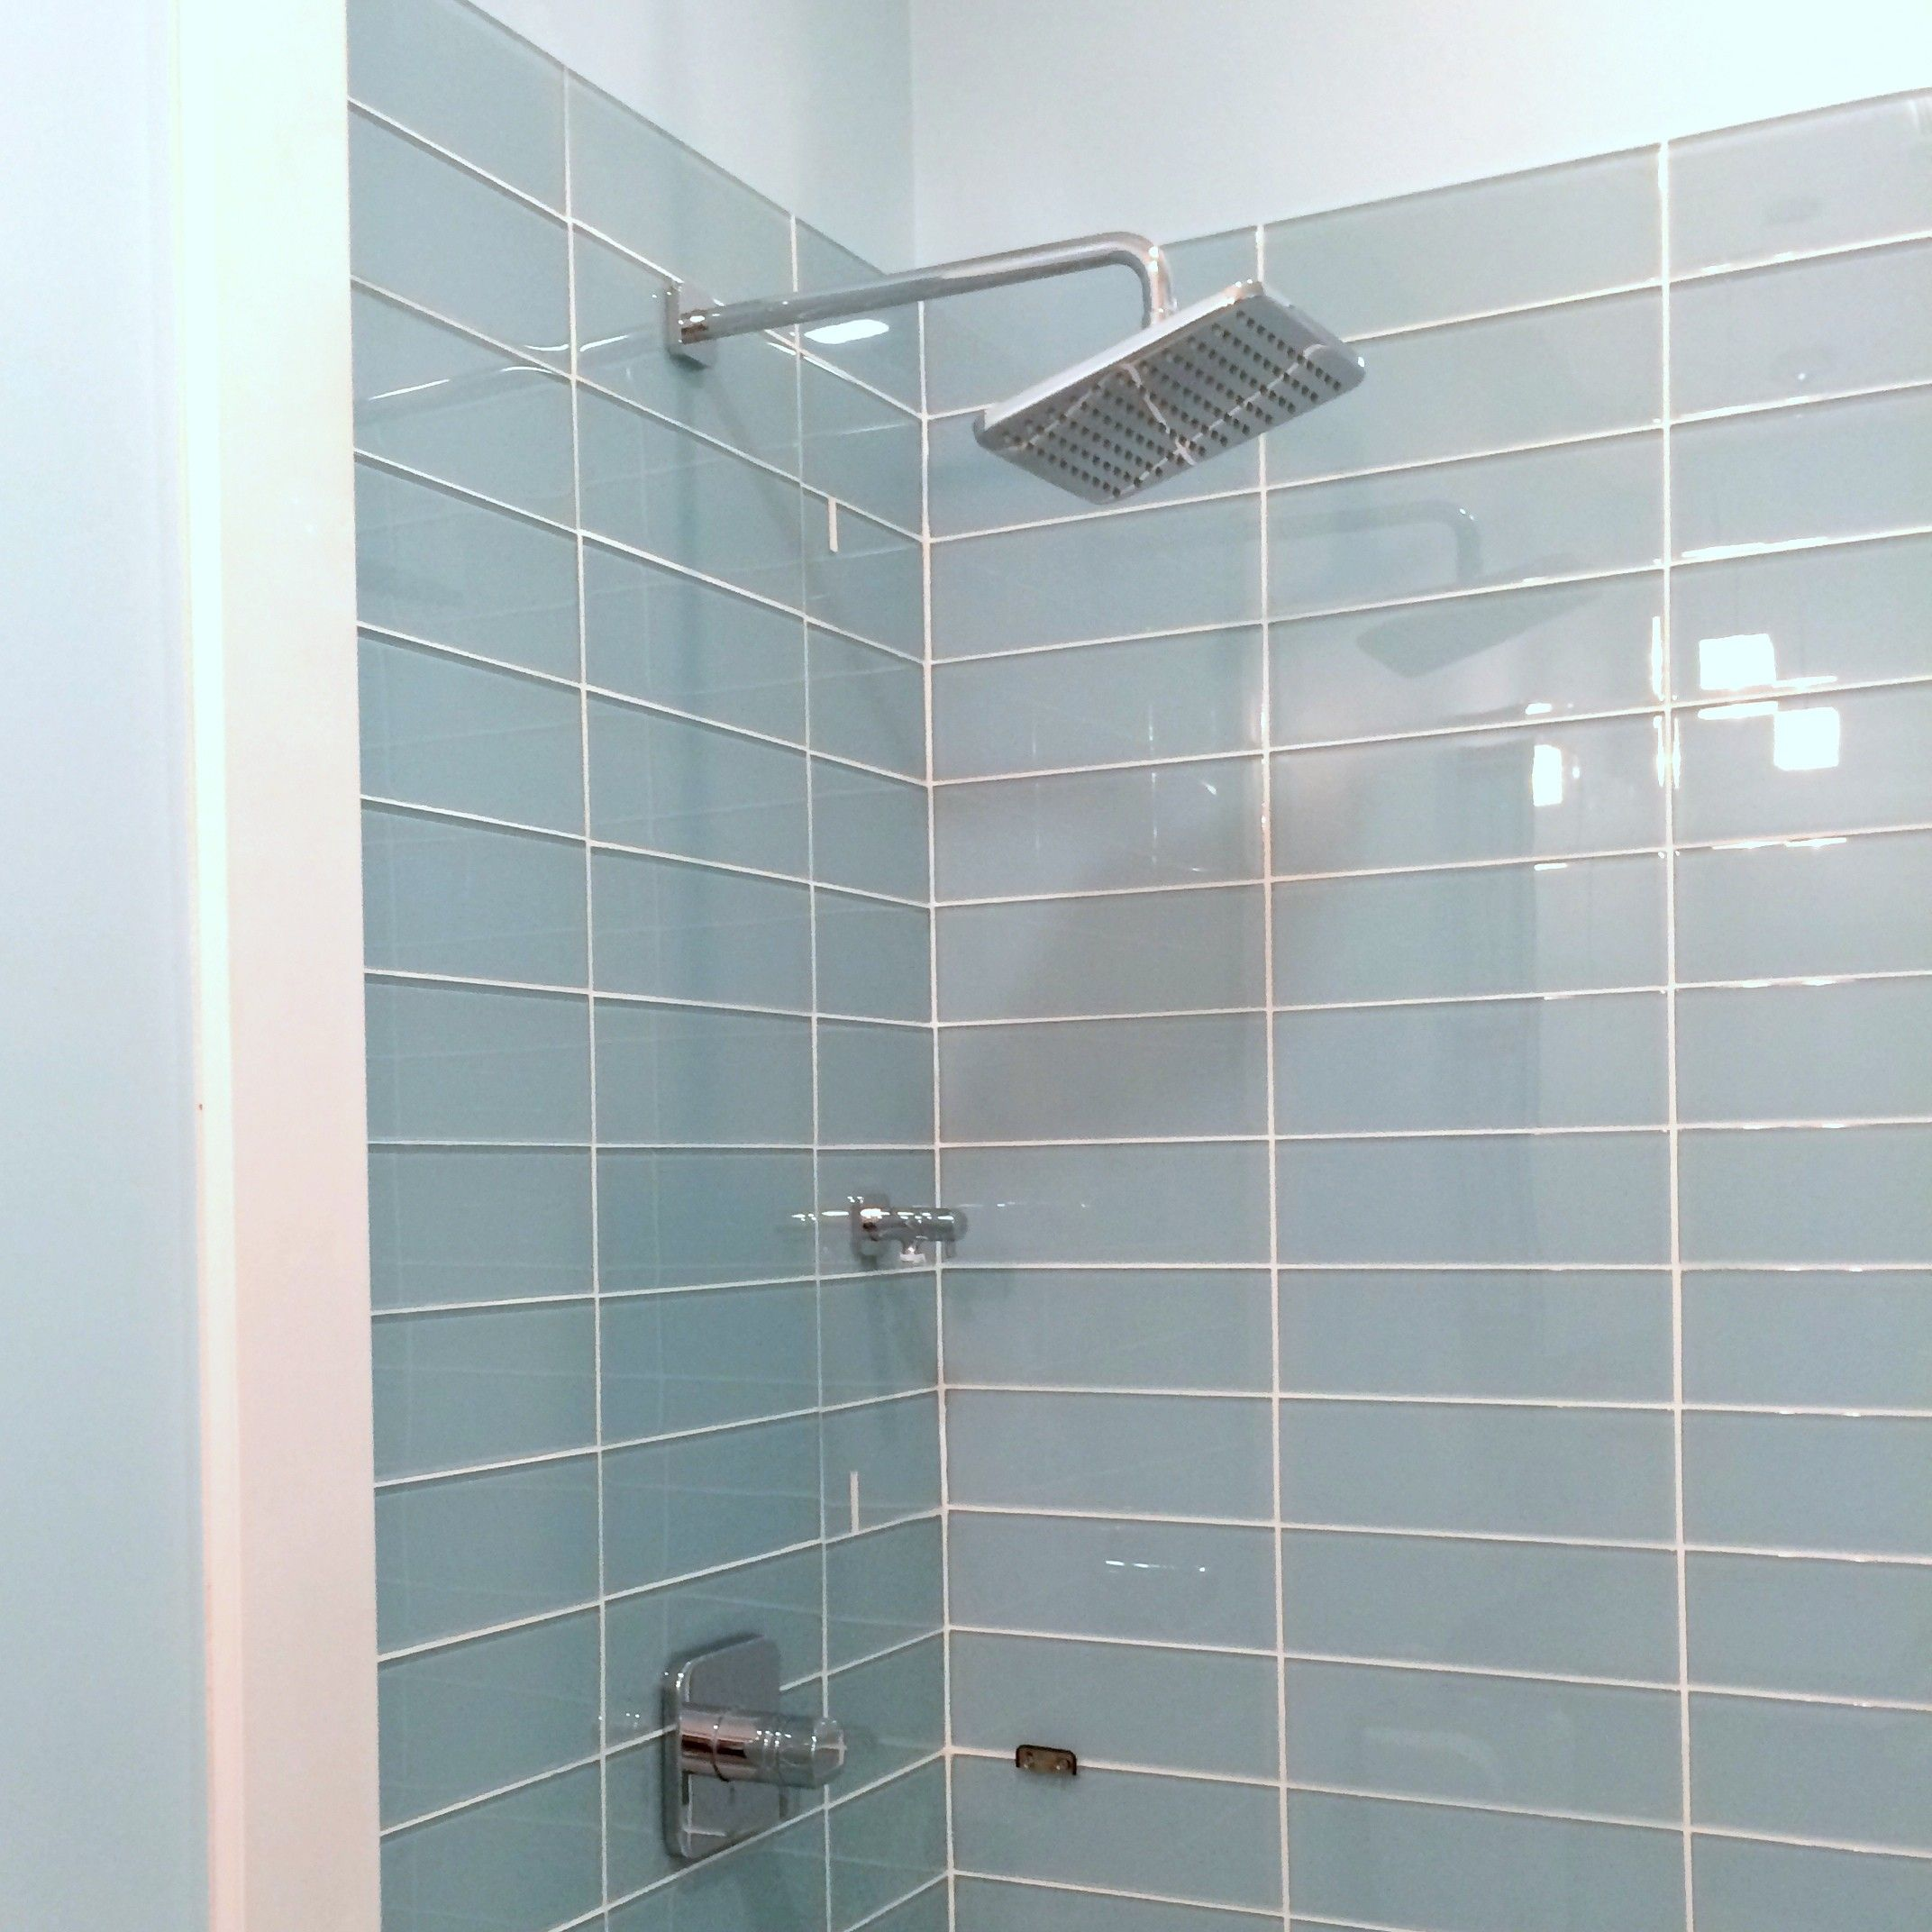 Lush® Glass Subway Tile | Vapor 4x12 in 2018 | Master Bathroom ...